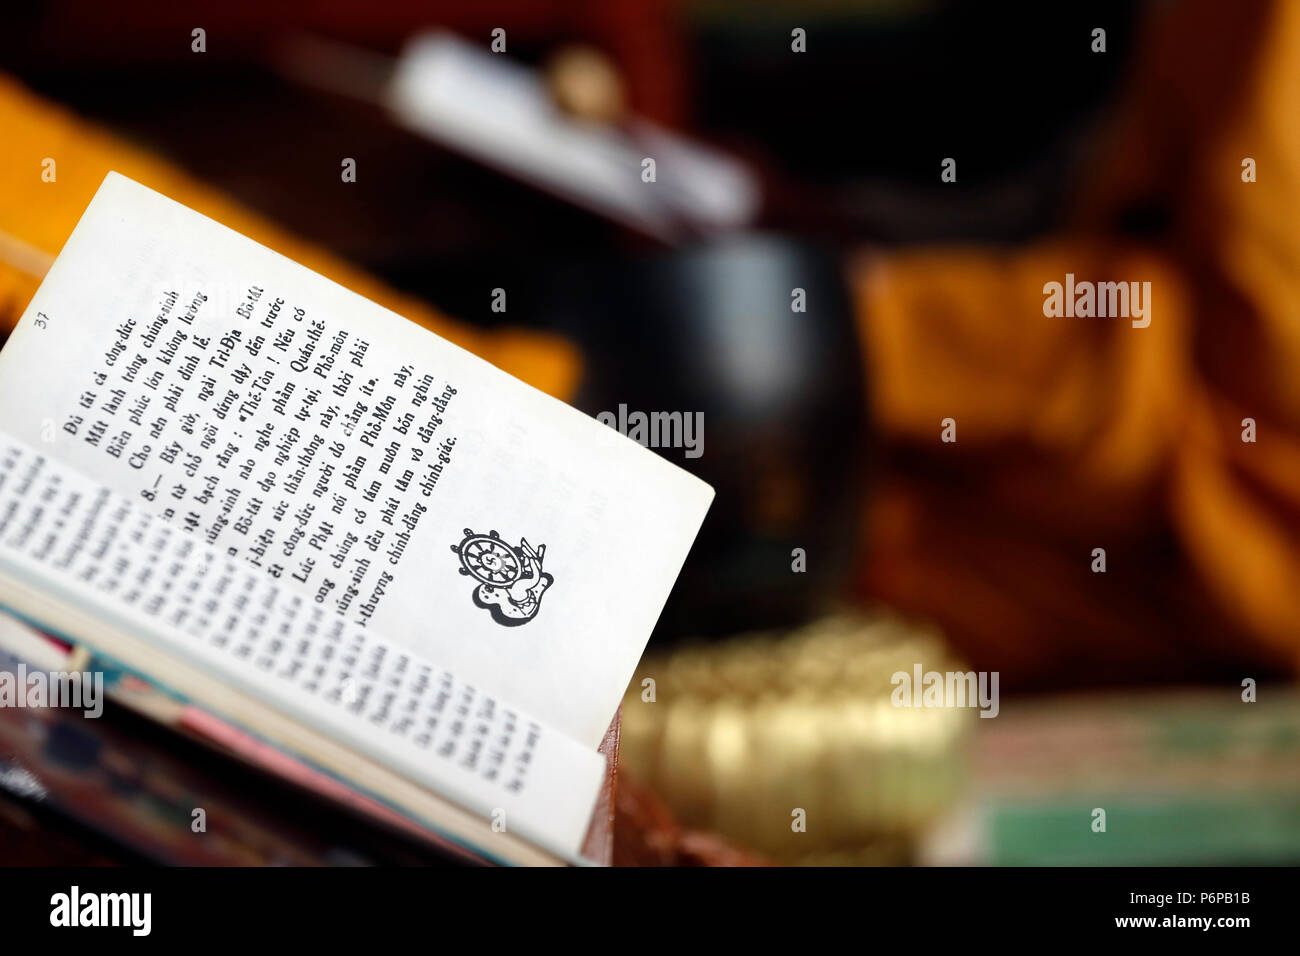 Chua Tu An Buddhist temple. Buddhist book in Vietnamese for ceremony.  Saint-Pierre en Faucigny. France. - Stock Image